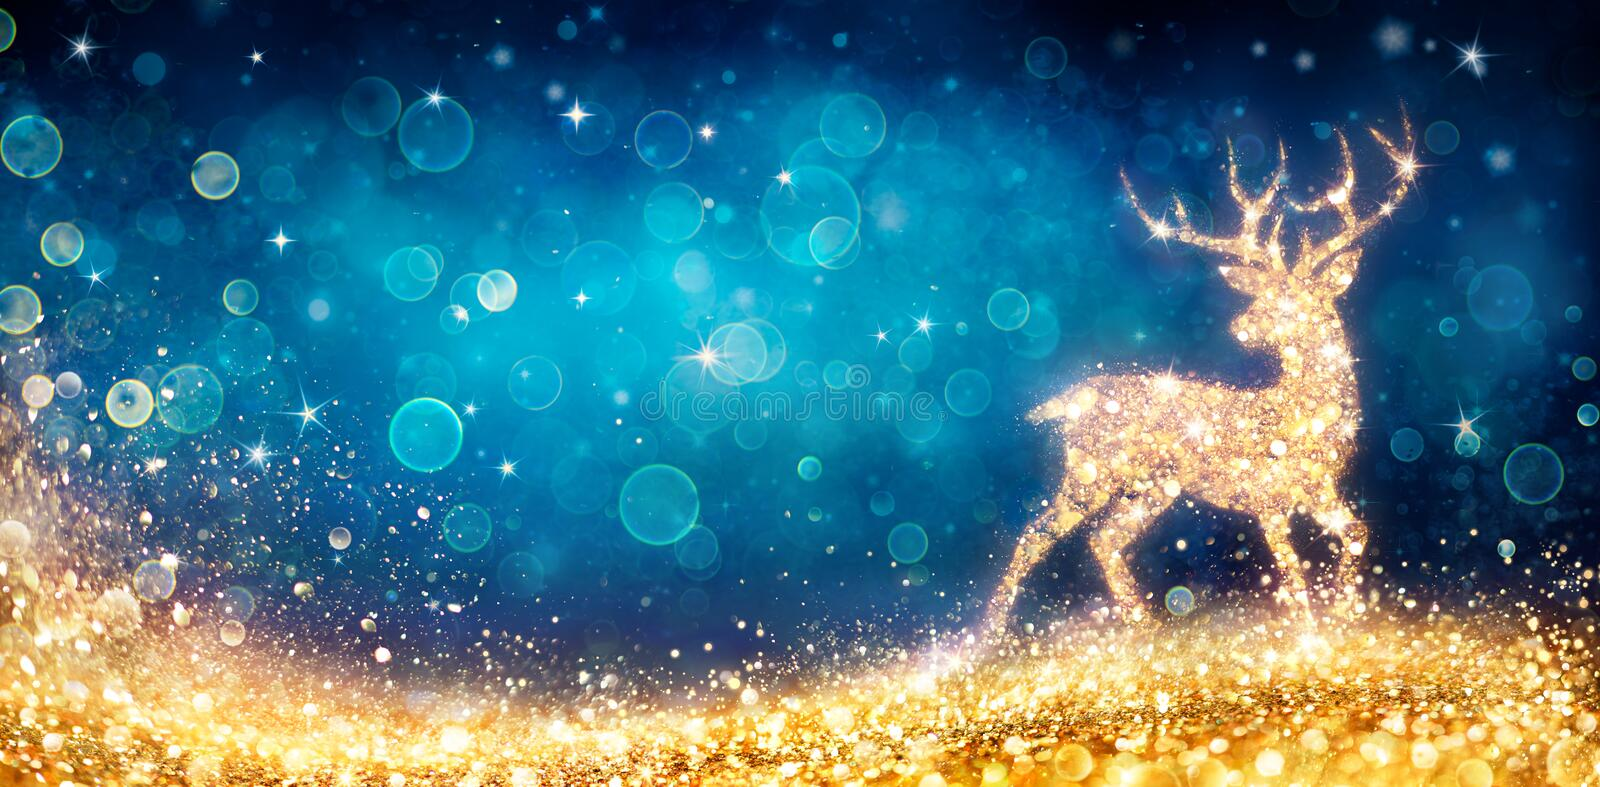 Christmas - Magic Golden Deer In Shiny Blue. Background royalty free stock images